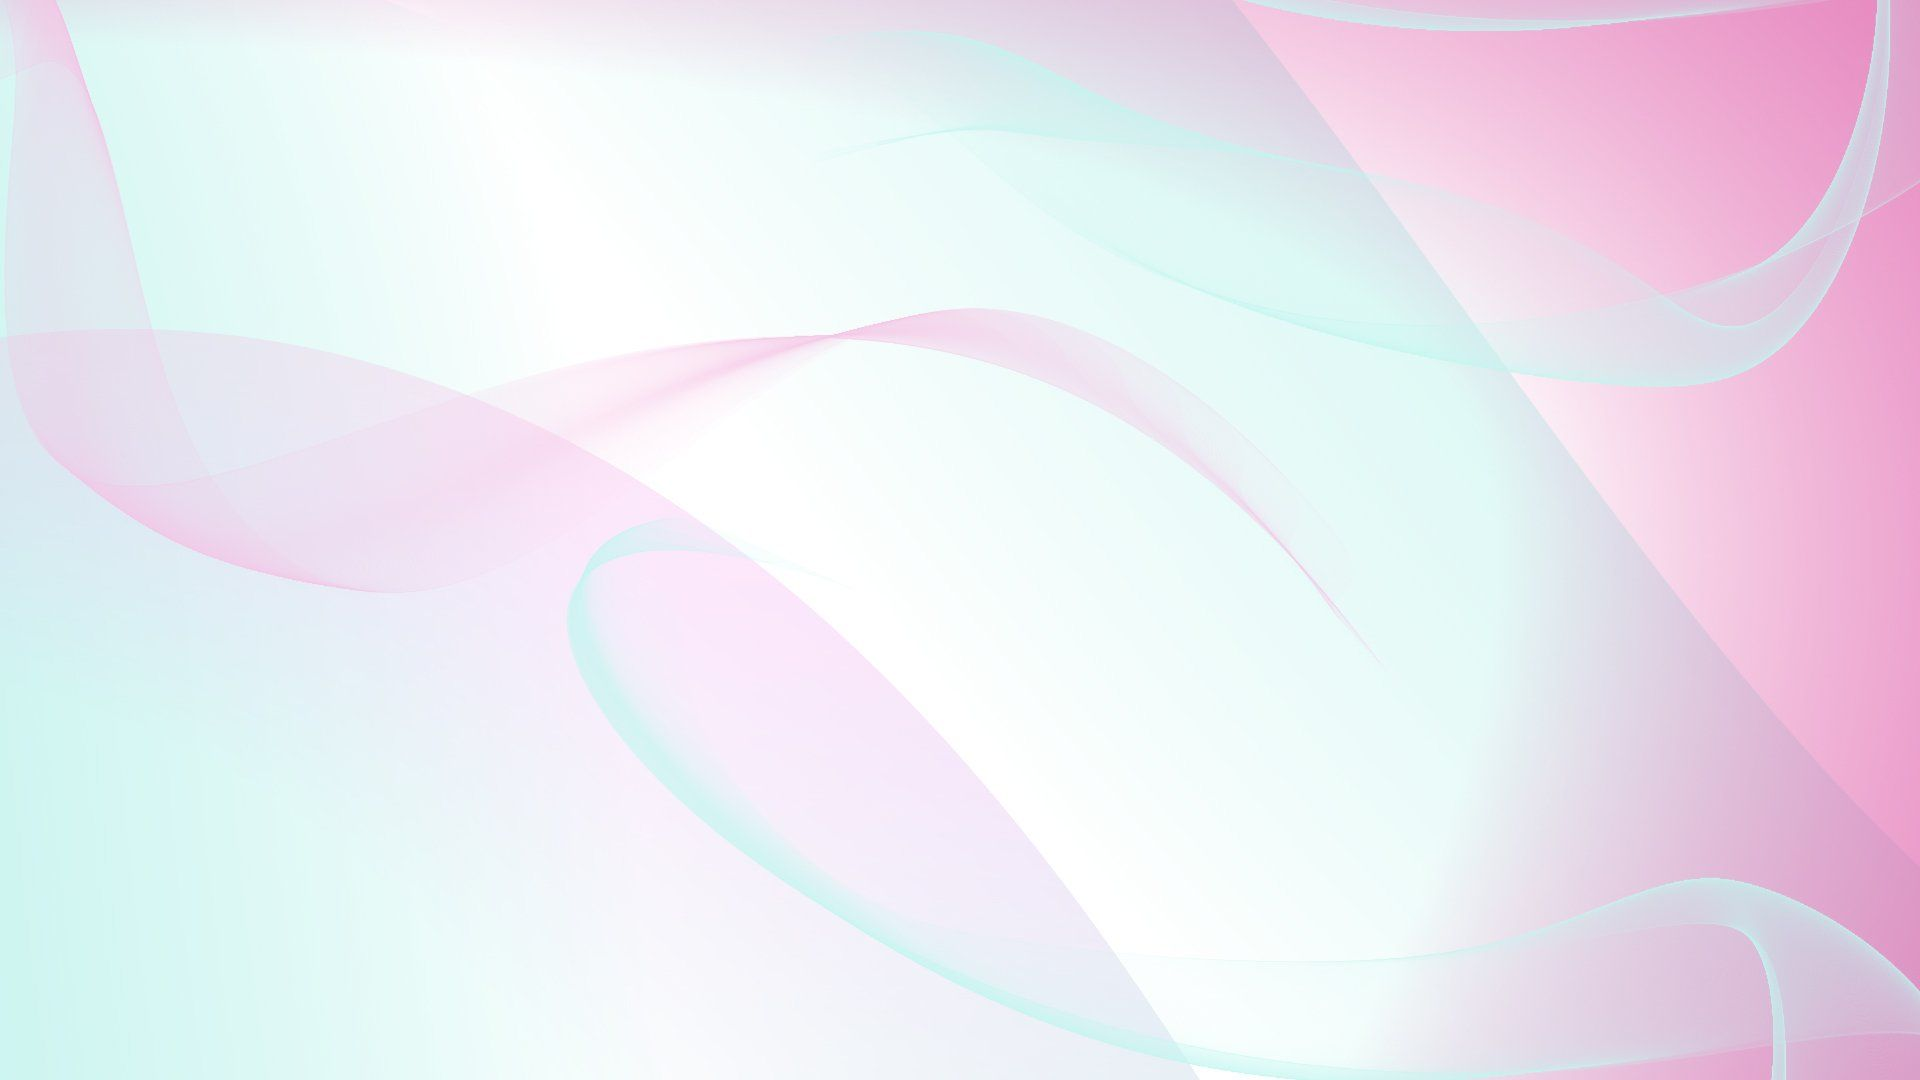 Pastel gradient wallpapers top free pastel gradient backgrounds wallpaperaccess - Pastel background hd ...